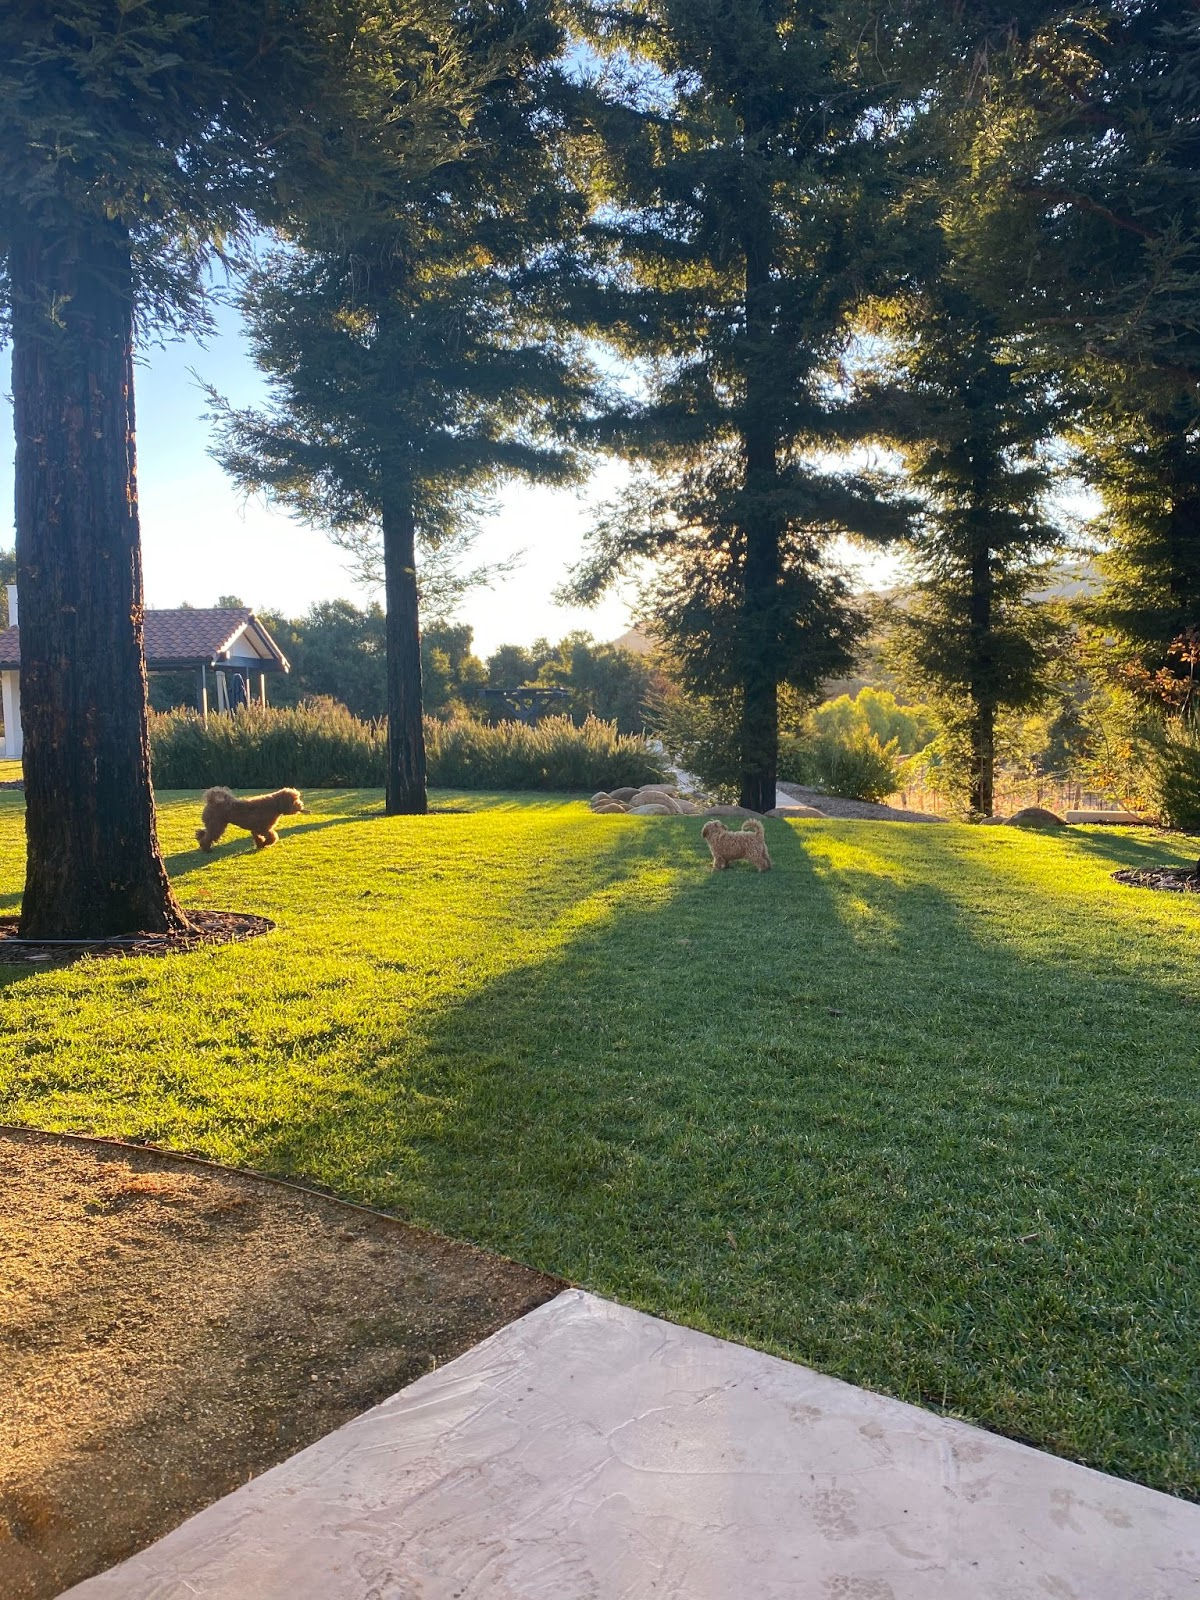 Backyard view with trees and two fluffy brown dogs playing